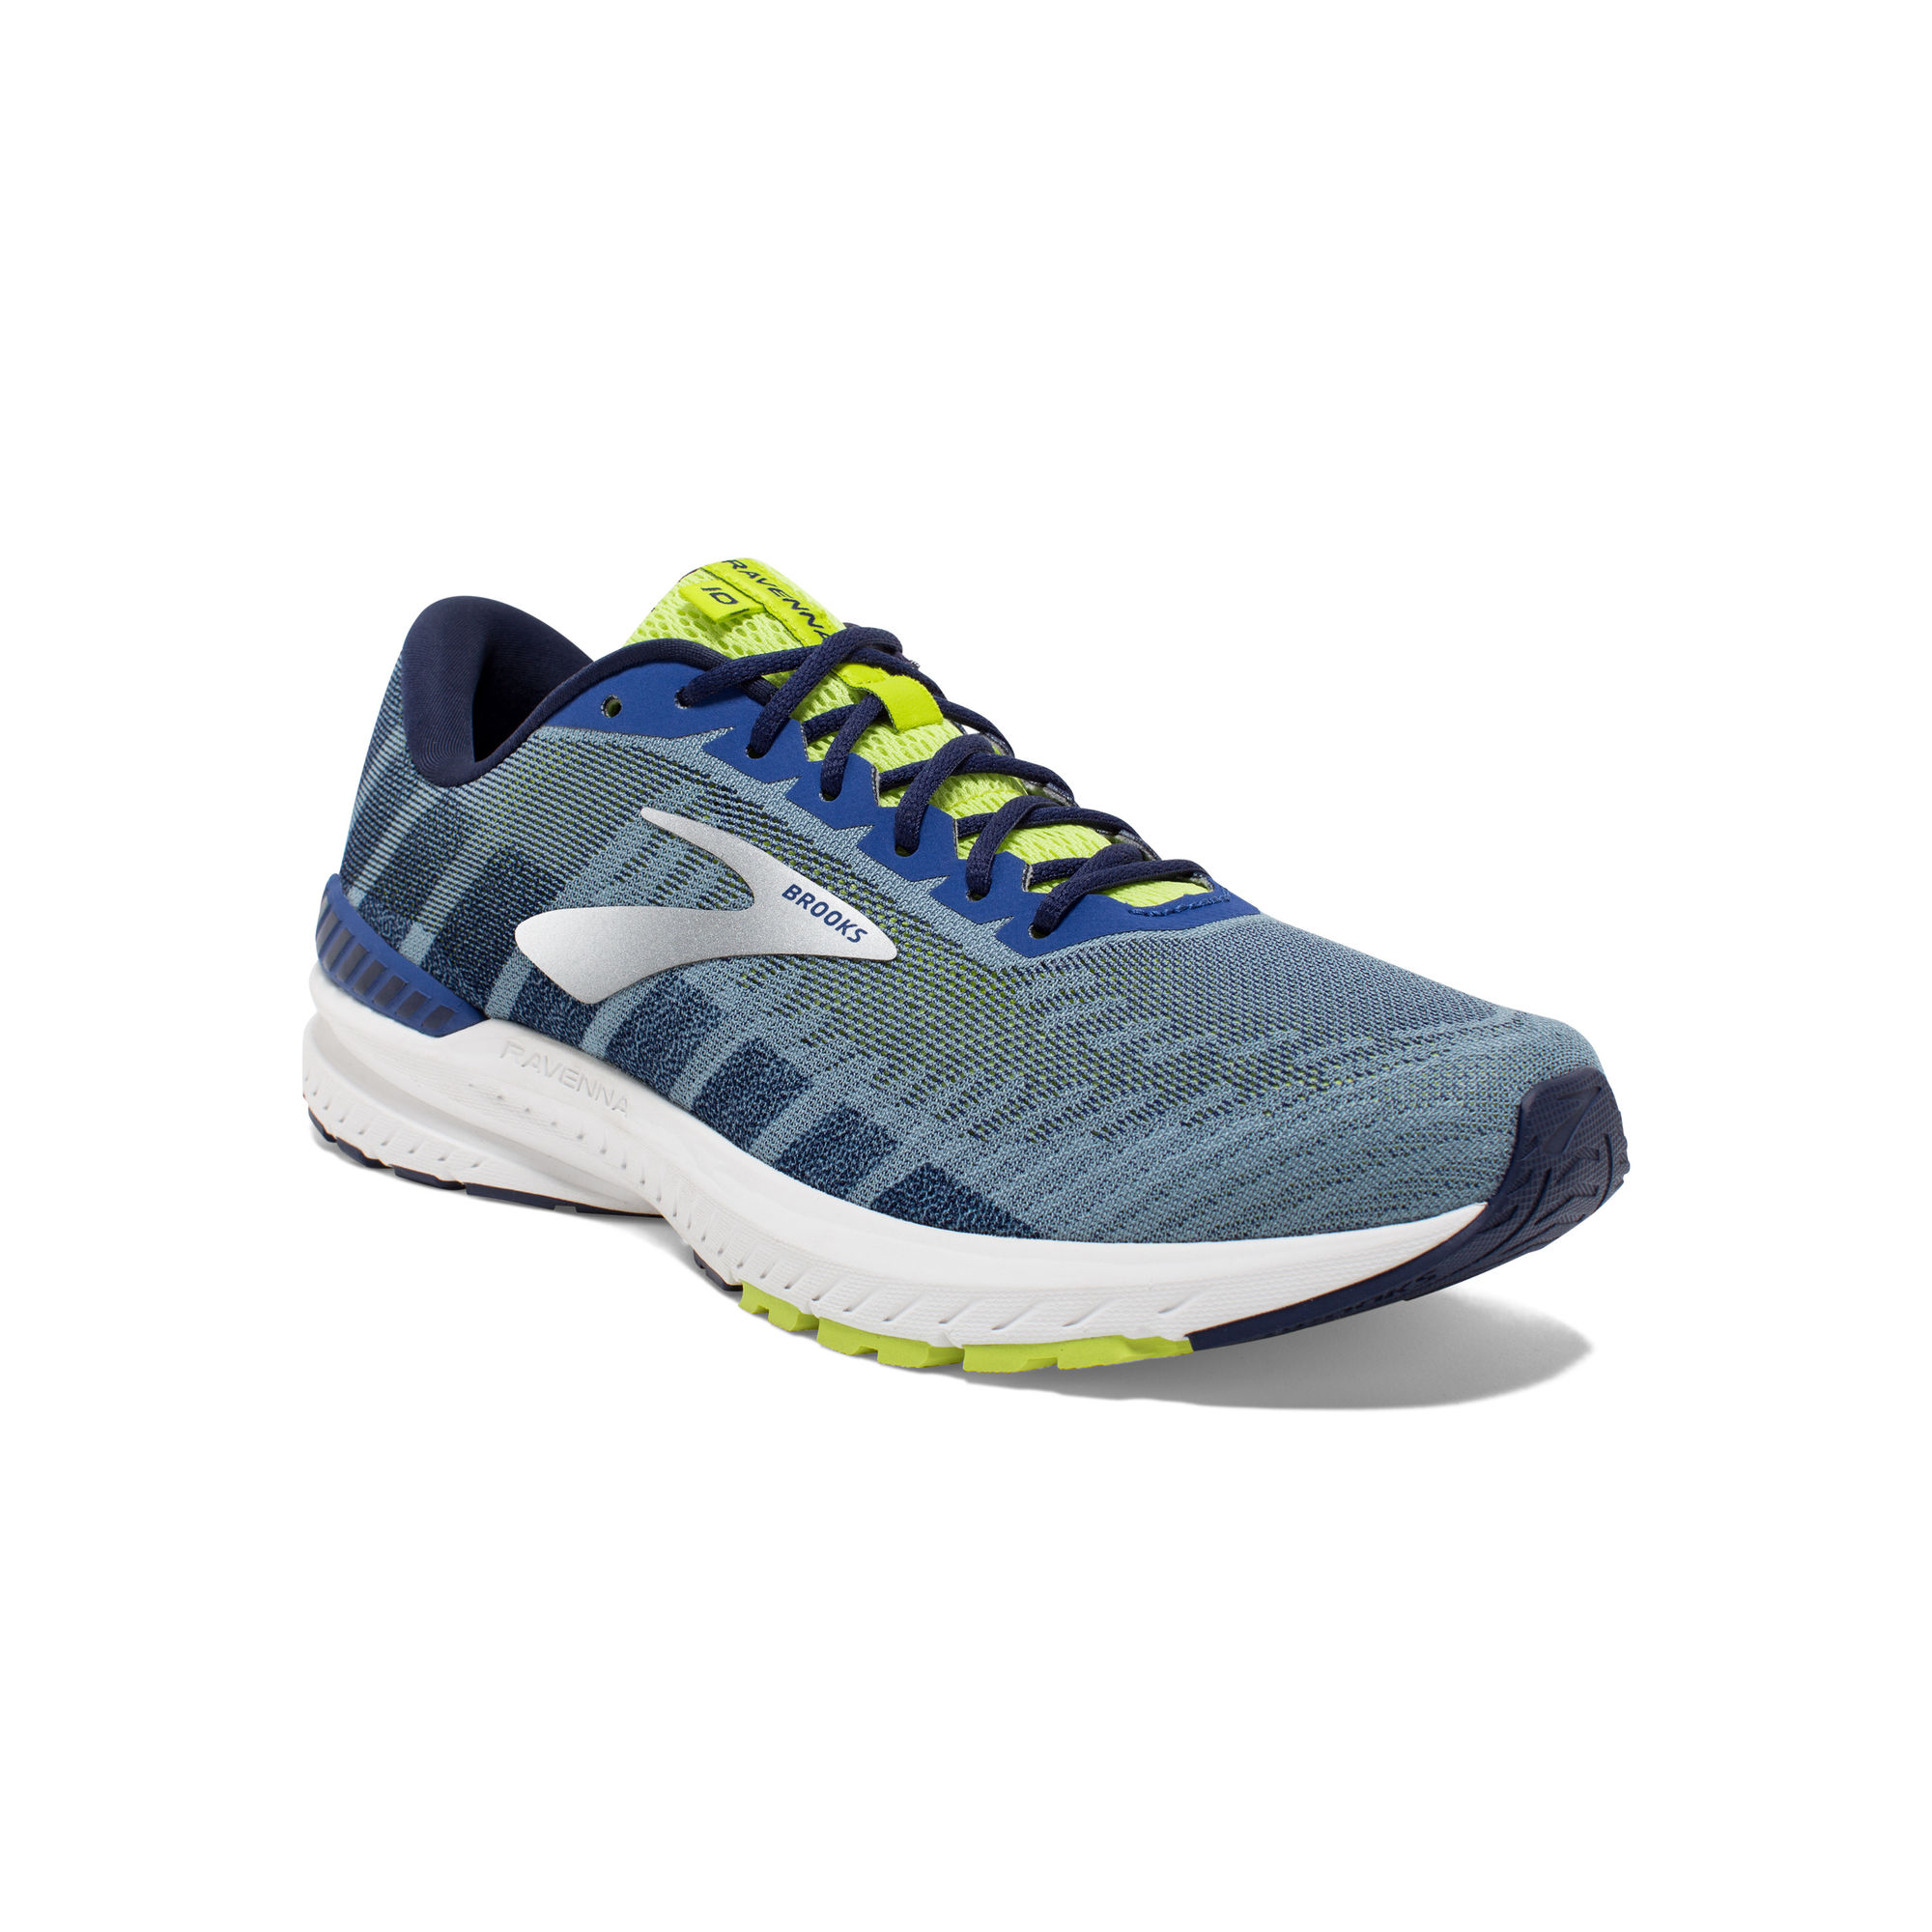 Brooks Ravenna 10 in Blau